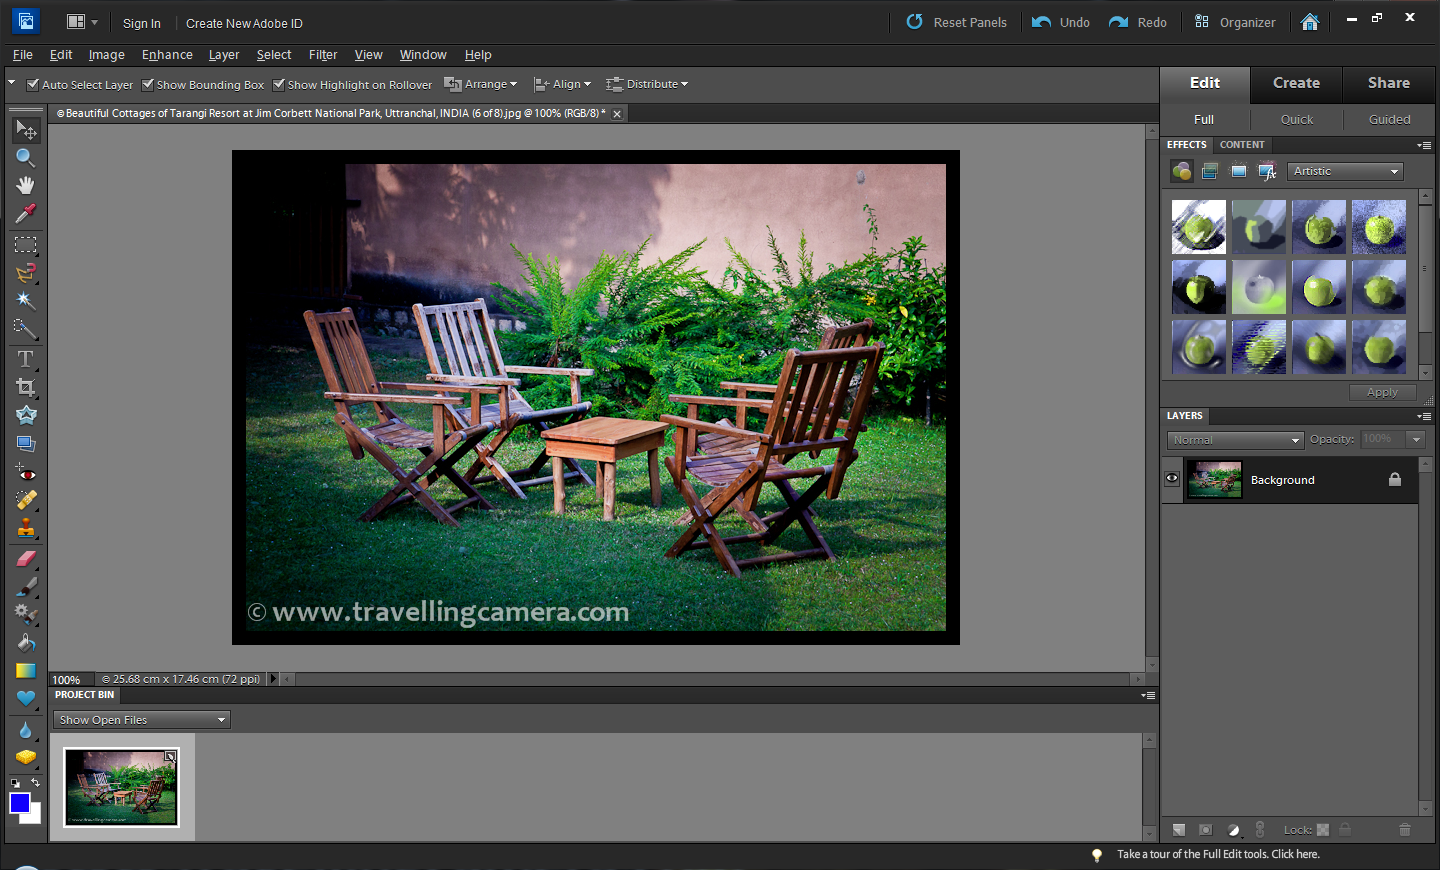 Adjust rotation and canvas size in Photoshop - Adobe